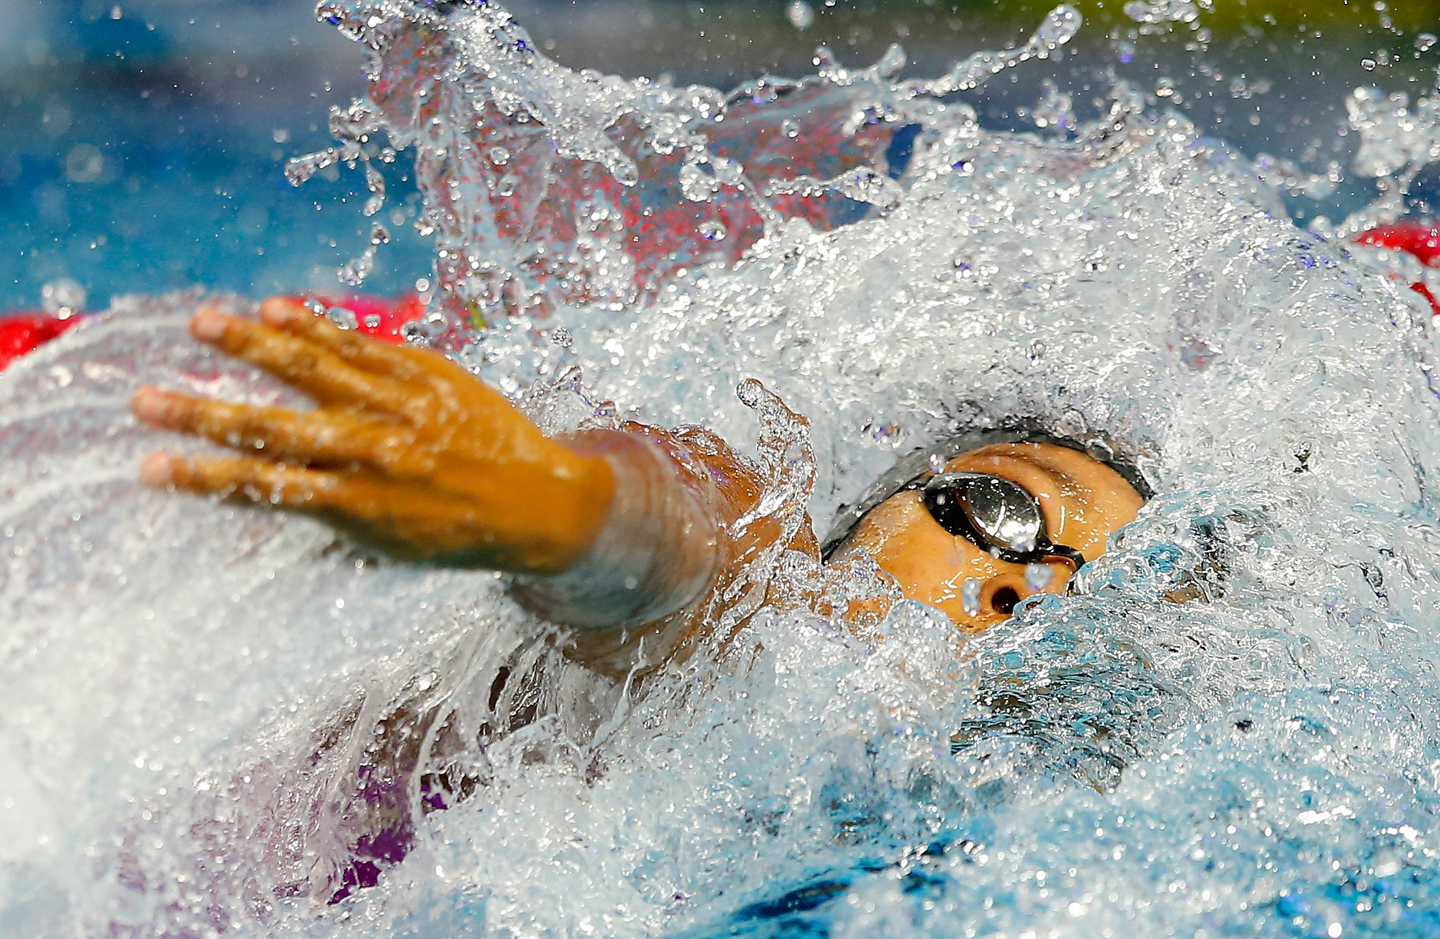 Lia Neal competes in the Women's 4x100m Freestyle during day two of the Mutual of Omaha Duel in the Pool at Indiana University Natatorium on December 12, 2015 in Indianapolis, Indiana.